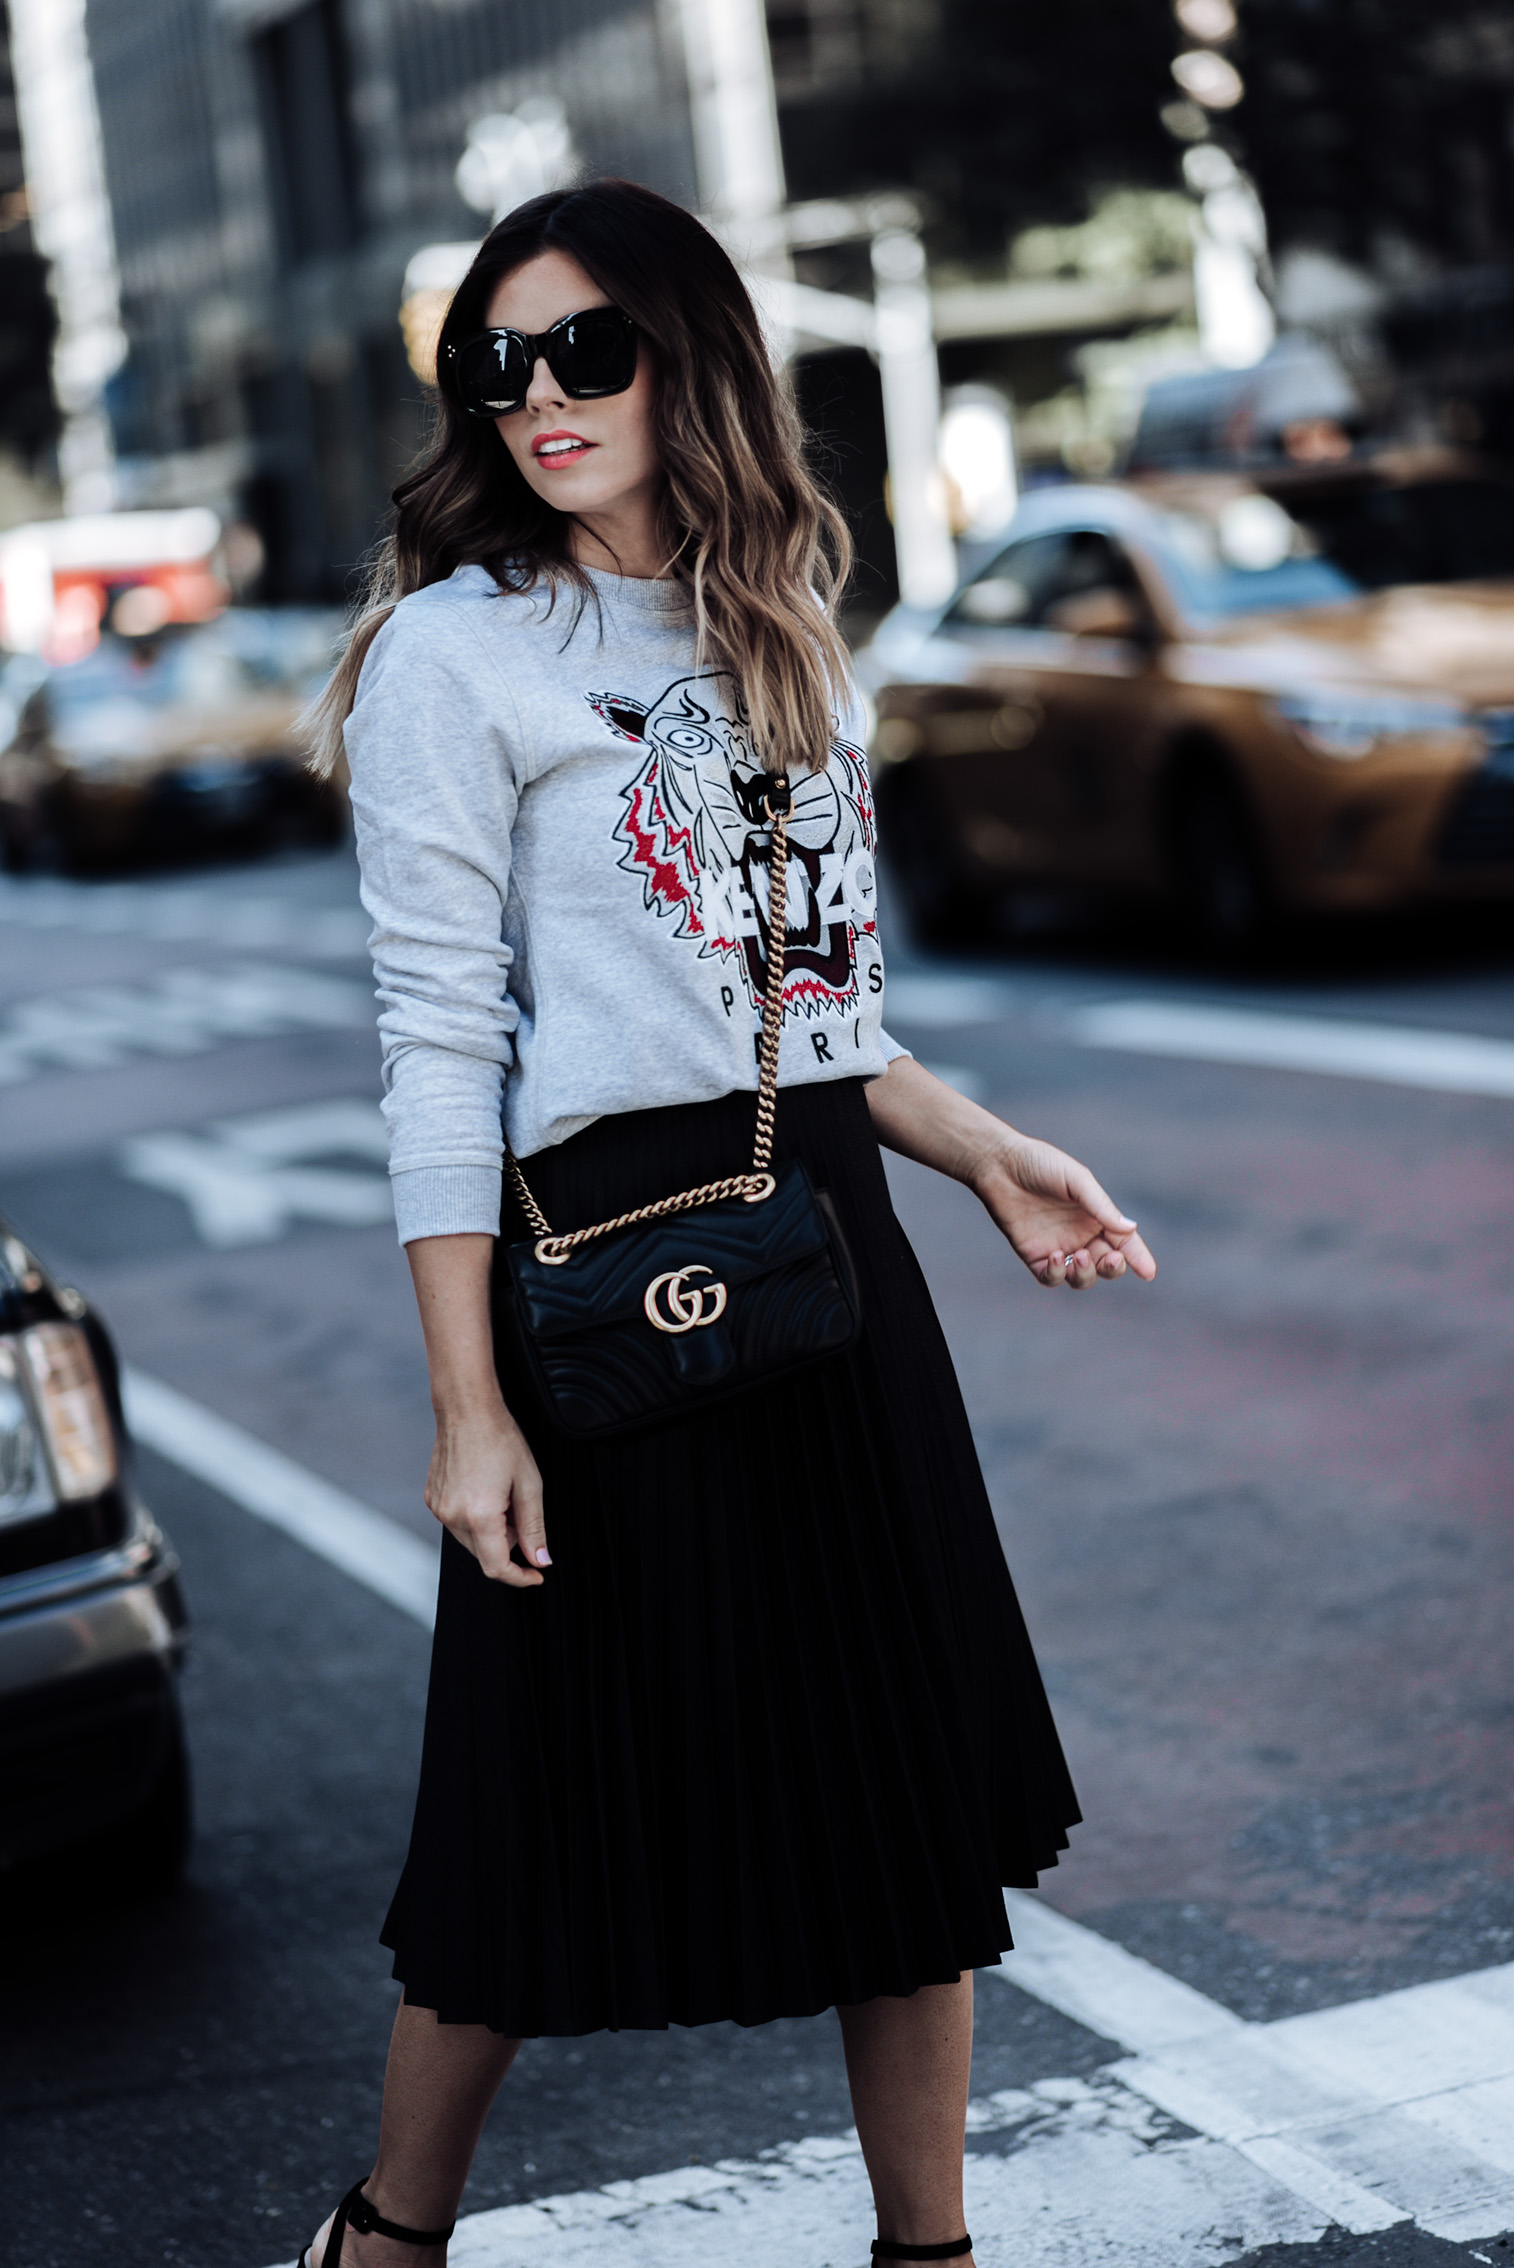 Tiffany Jais fashion and lifestyle blogger of Flaunt and Center | Houston fashion blogger | NYFW day 2 outfit | Streetstyle blog Pleated skirt | Kenzo Sweatshirt | Platform heels | Gucci Marmont Bag